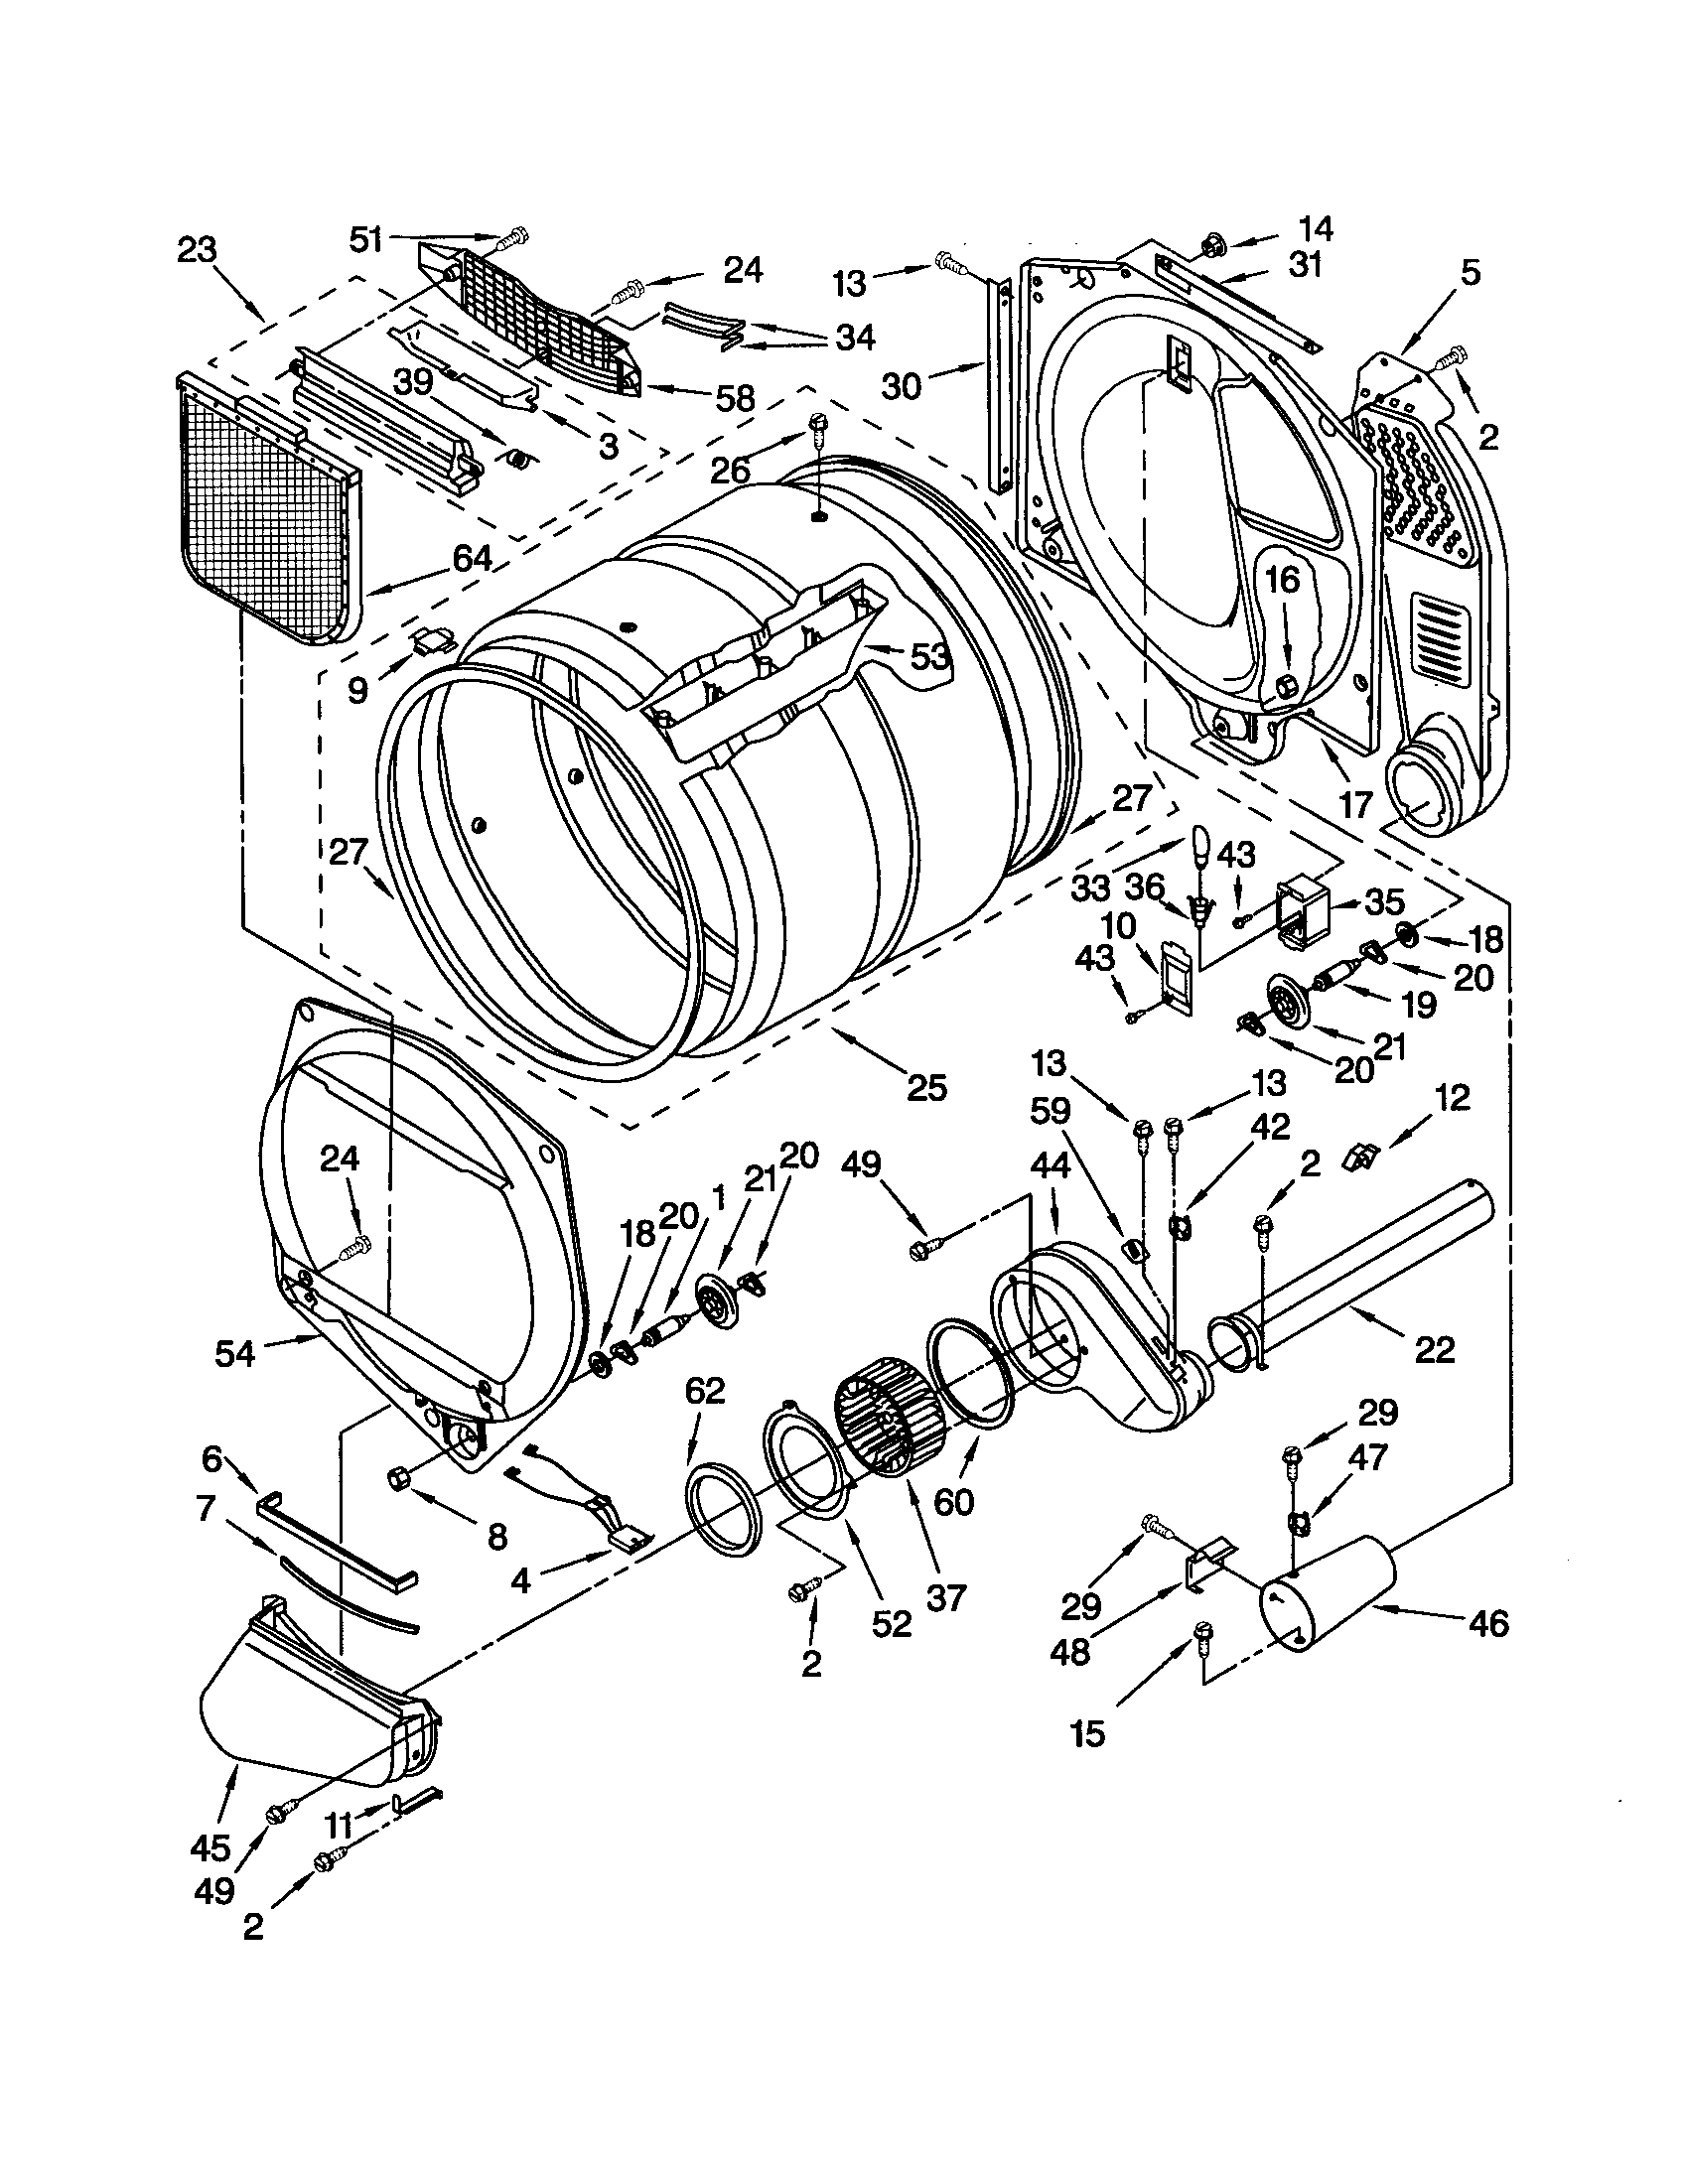 small resolution of kenmore dryer wiring diagram 220 data diagram schematic kenmore dryer wiring diagram 220